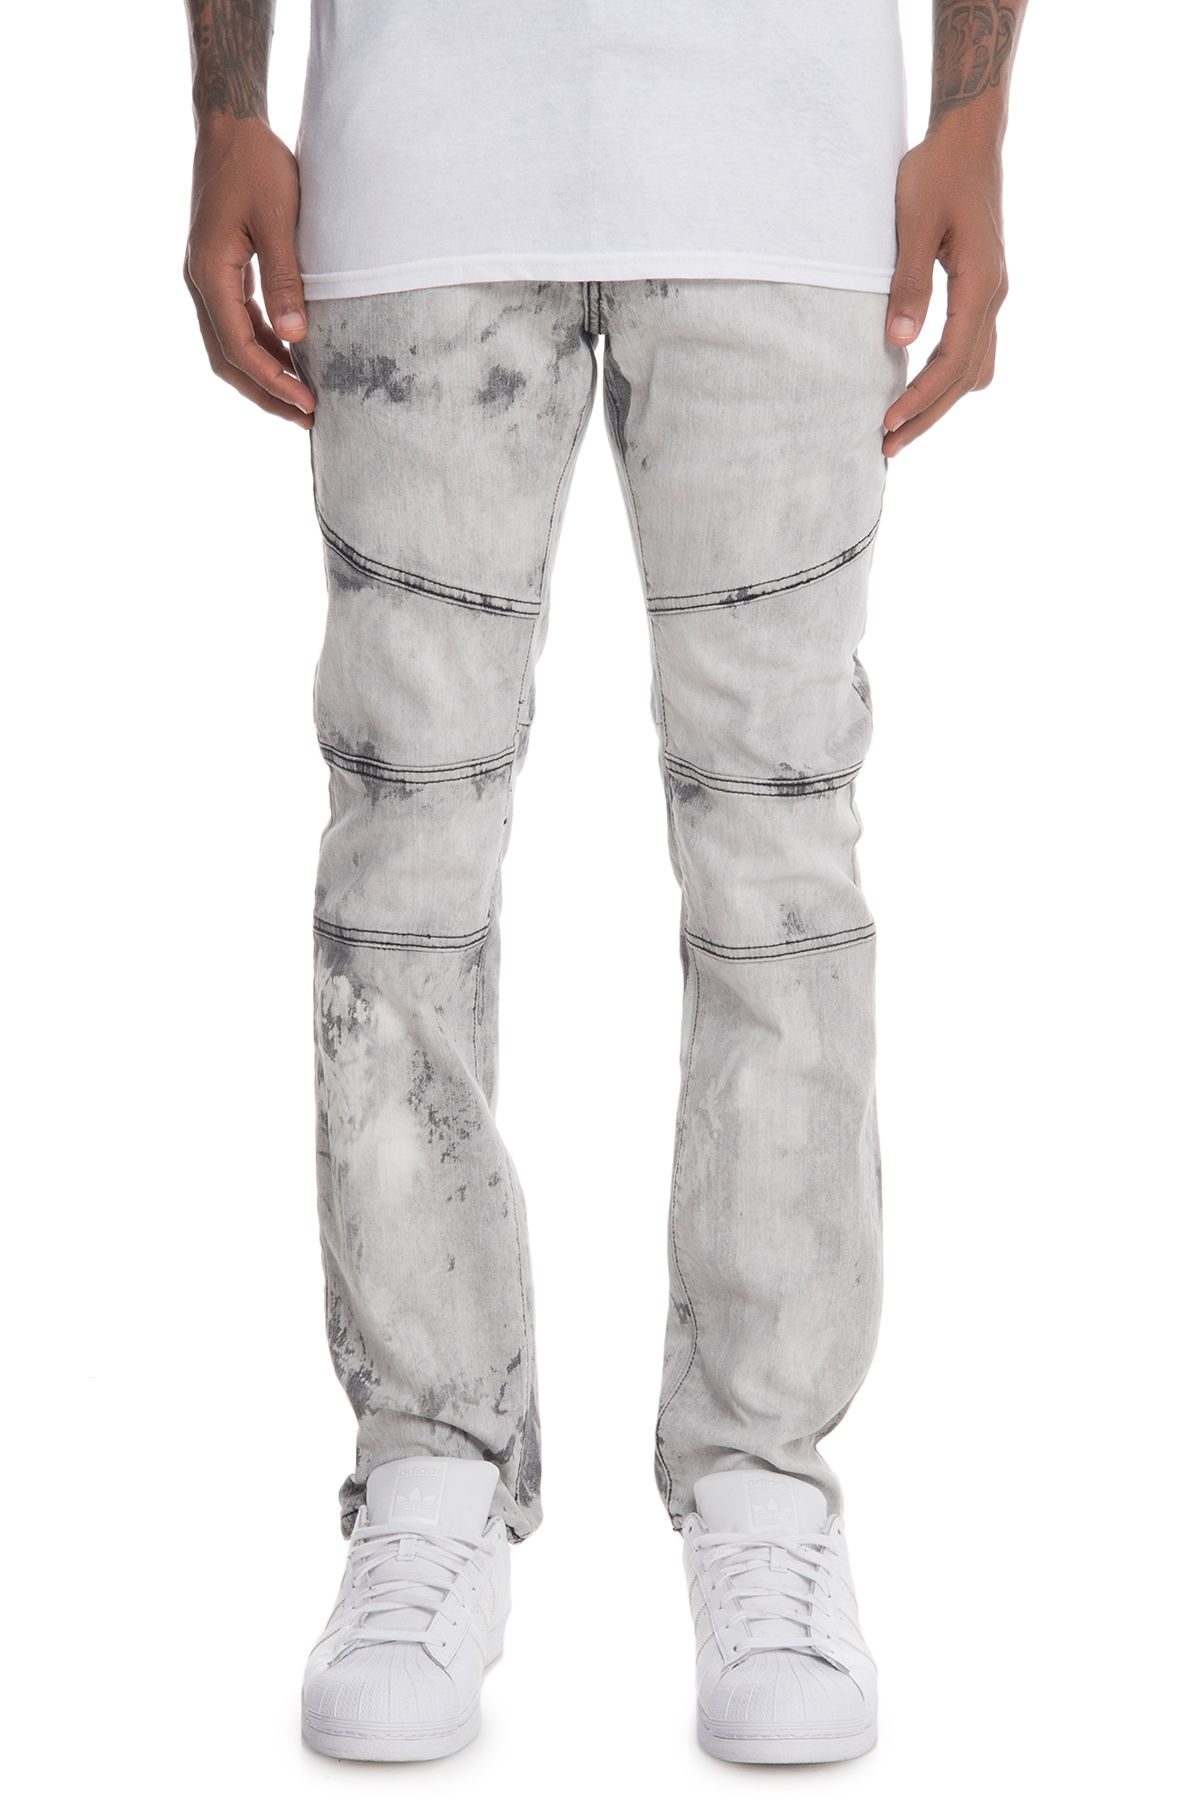 Image of The Euro - Arrowhead Denim Jeans in White